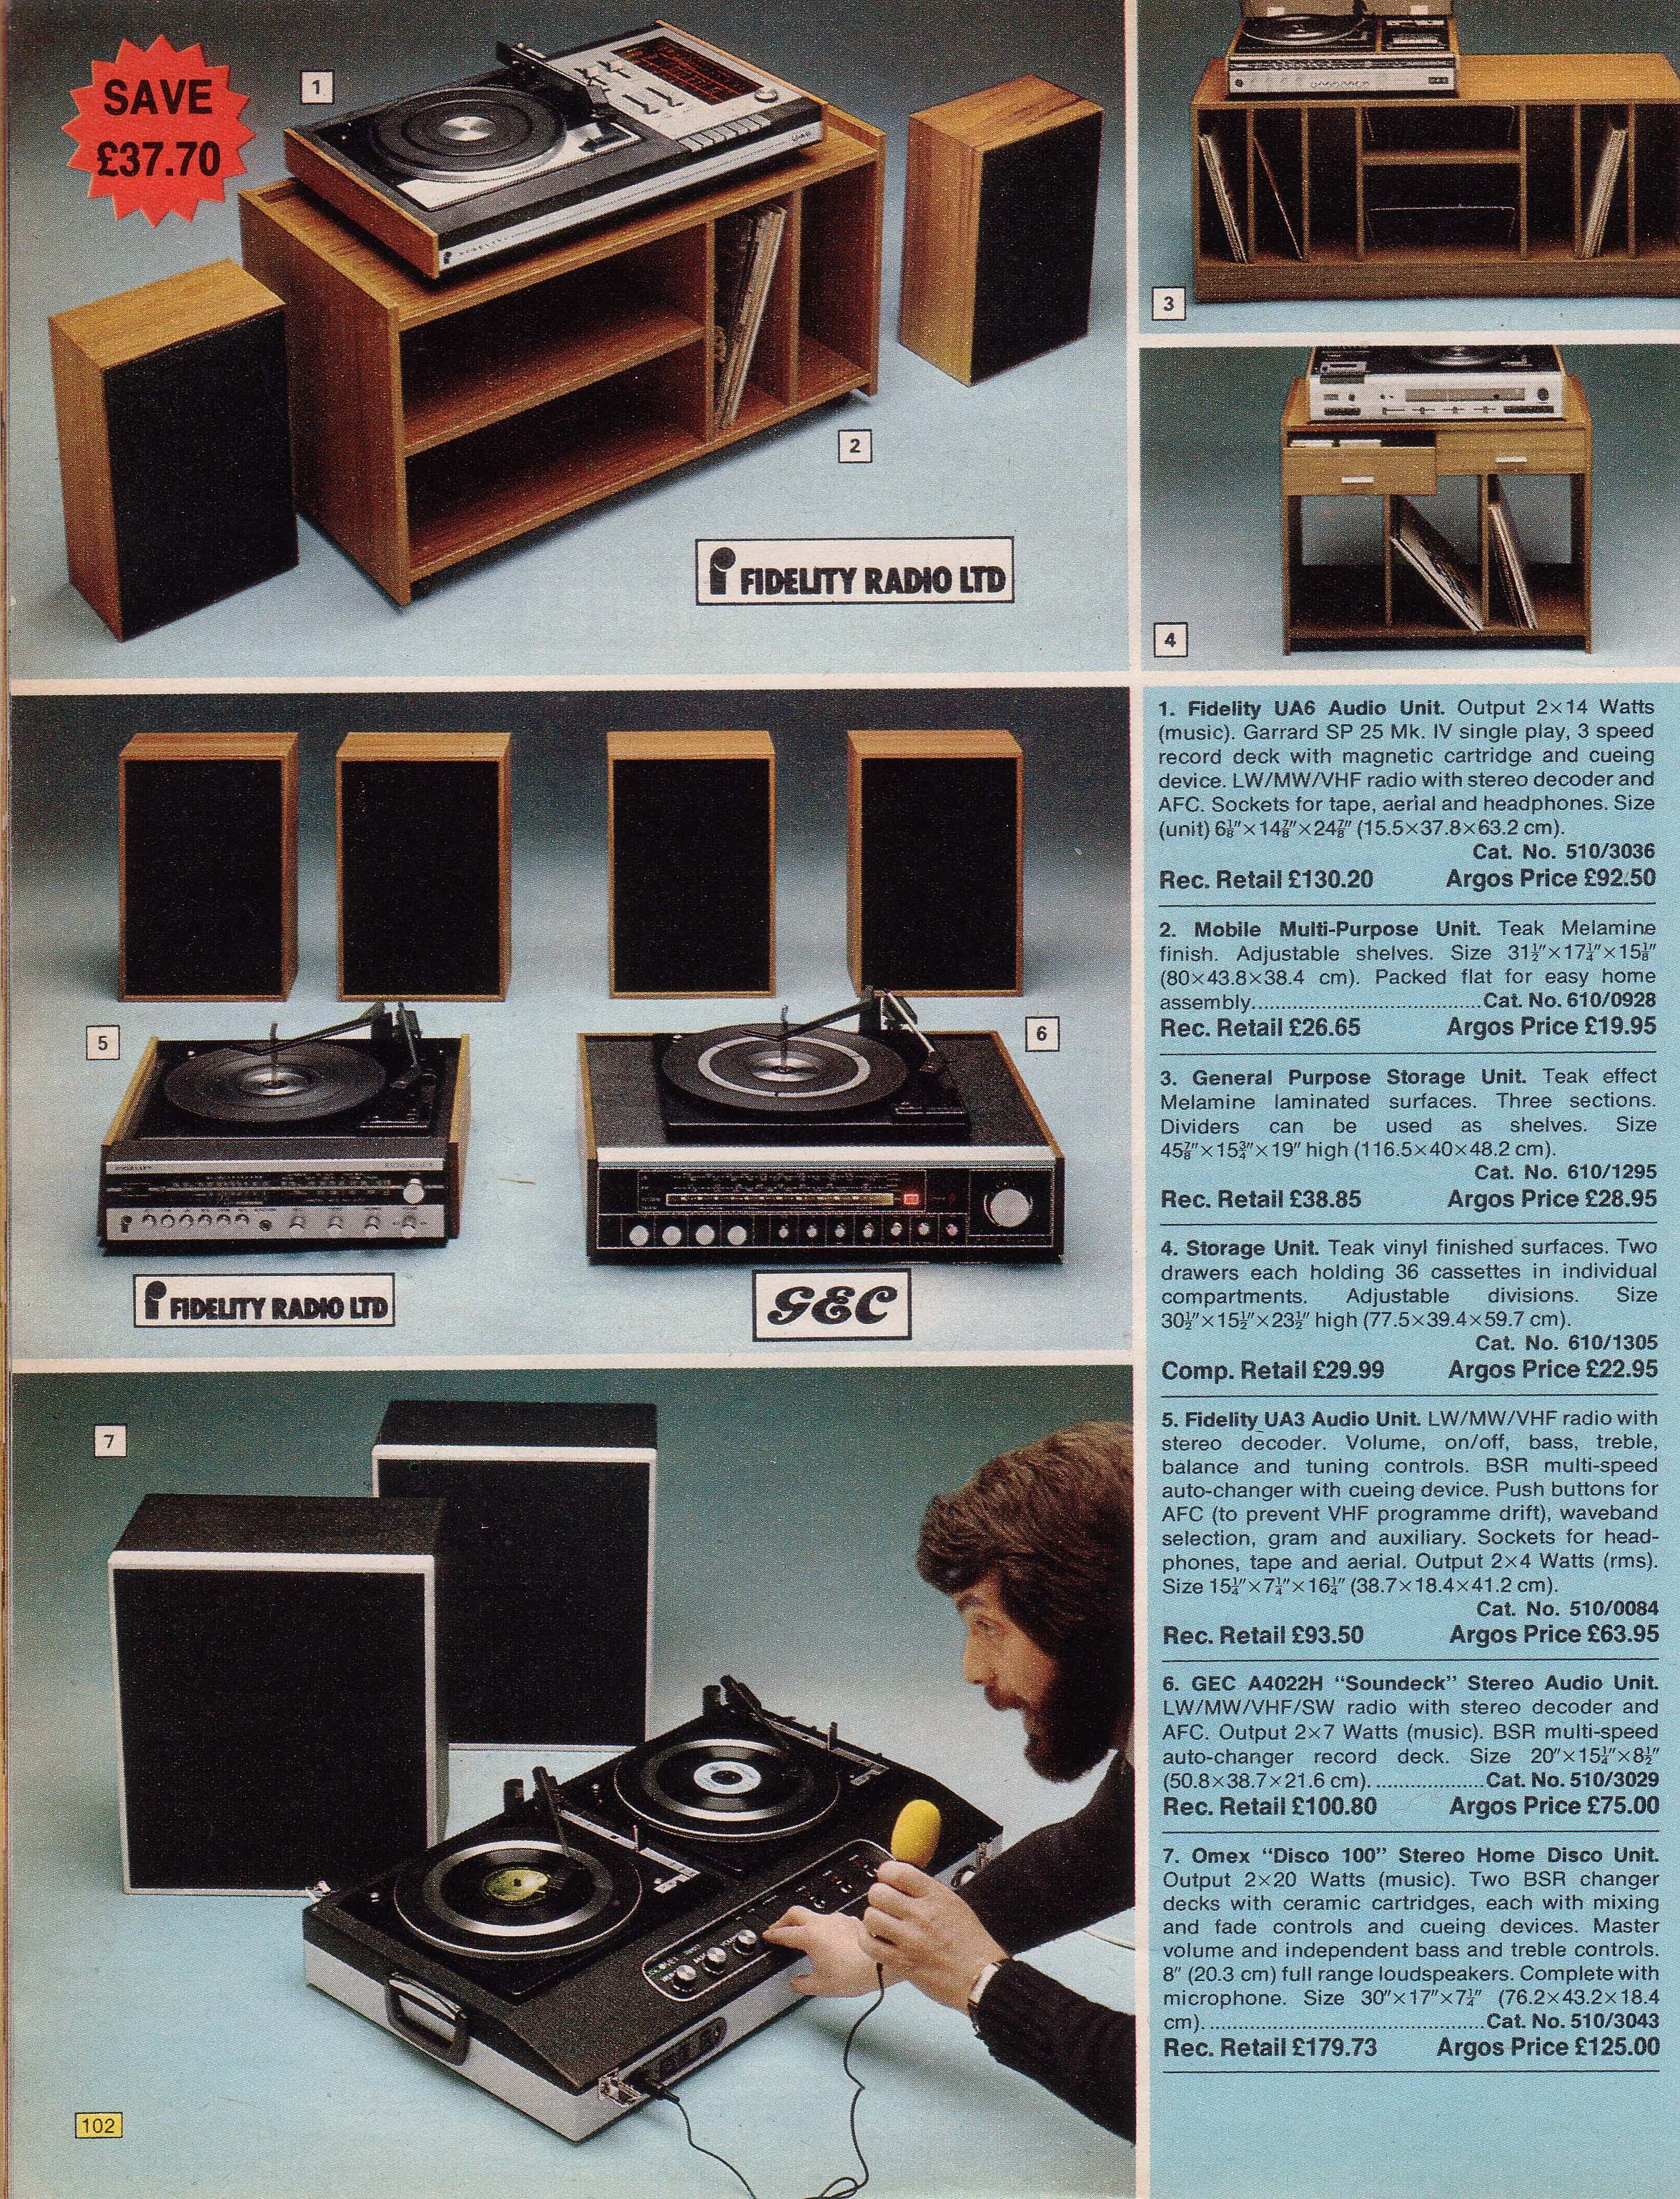 Page 102 | Old Argos catalogue of 1976 | Record player, Argos